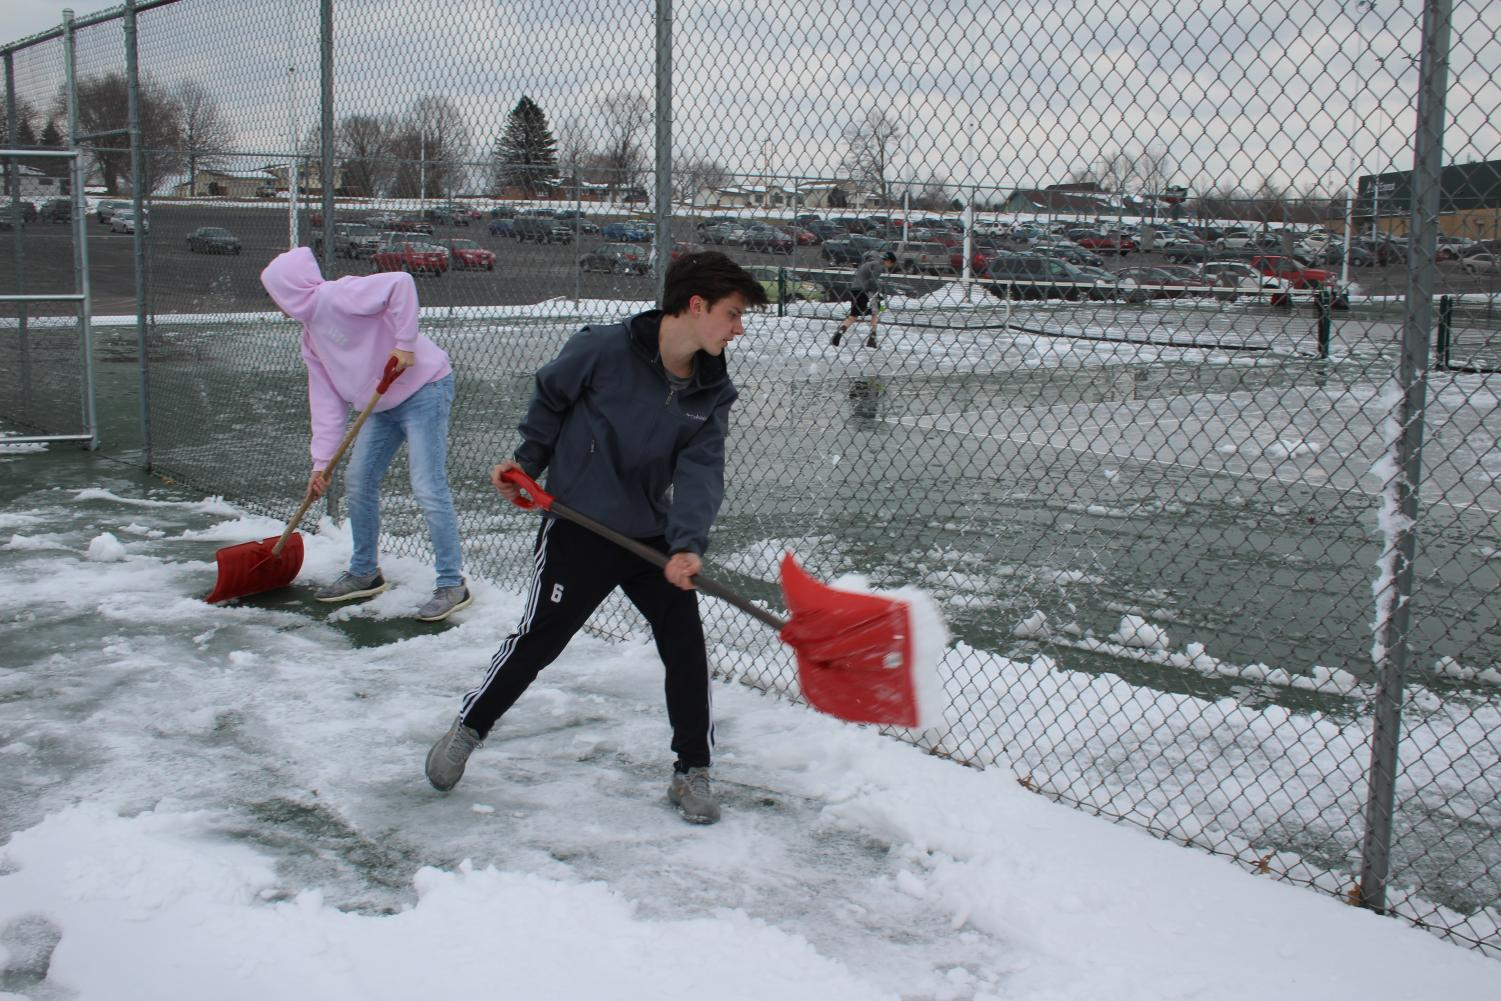 Jordan Sazama, senior, and John Belton, freshman, clear the courts full of snow after a snow day.